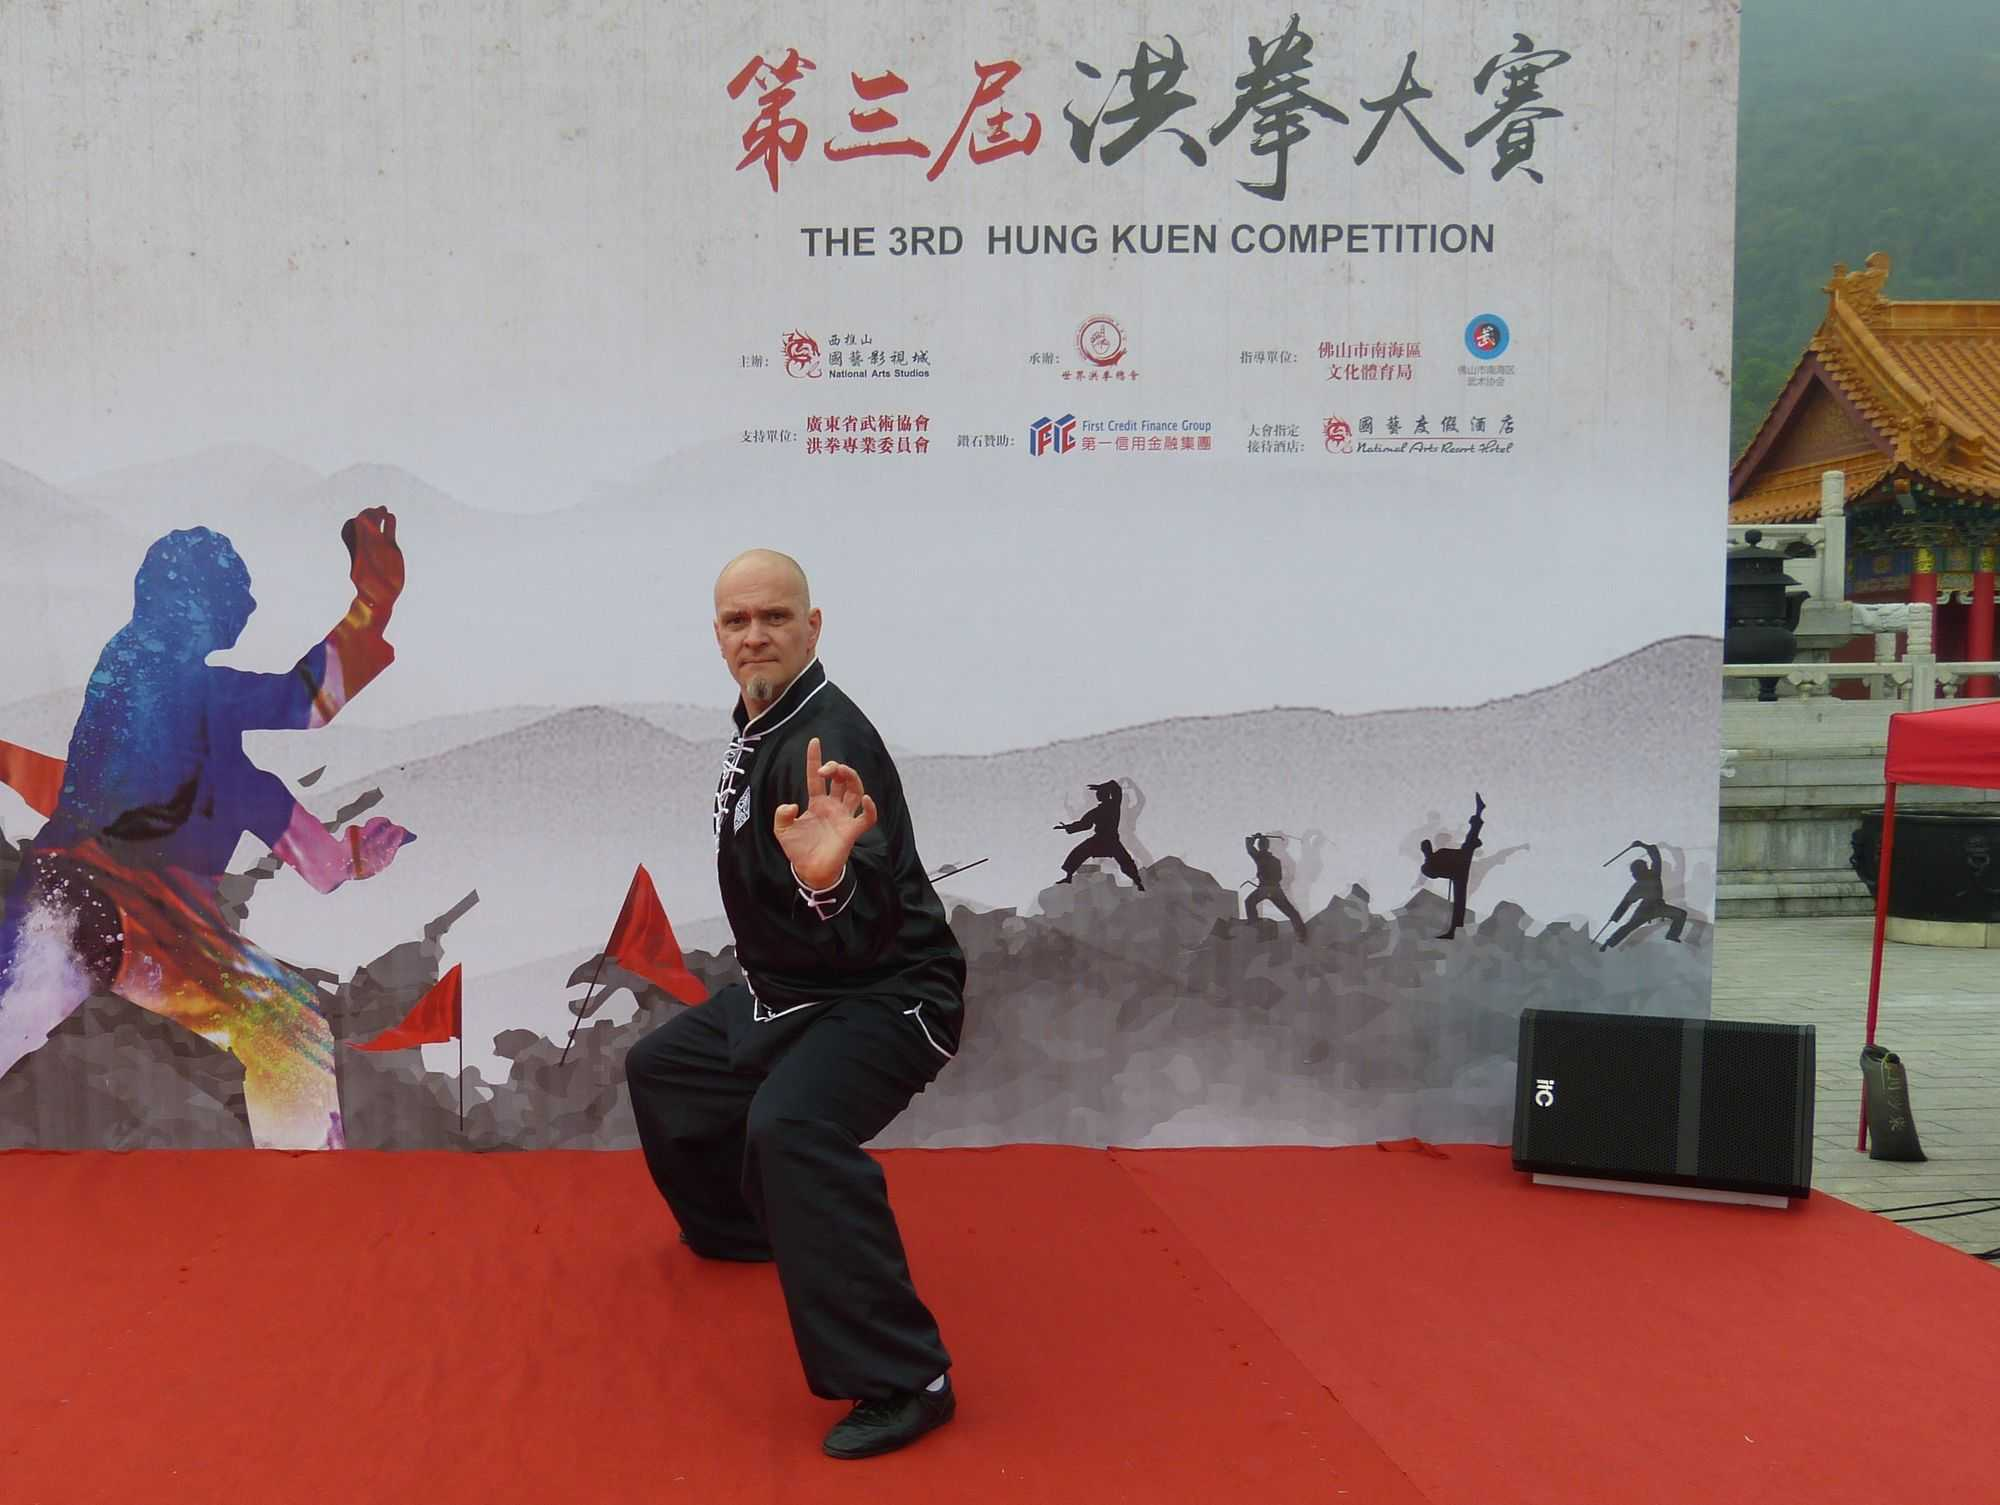 Sebastian Hoffmann beim 3. Hung Kuen Competition 2018 in Foshan, China